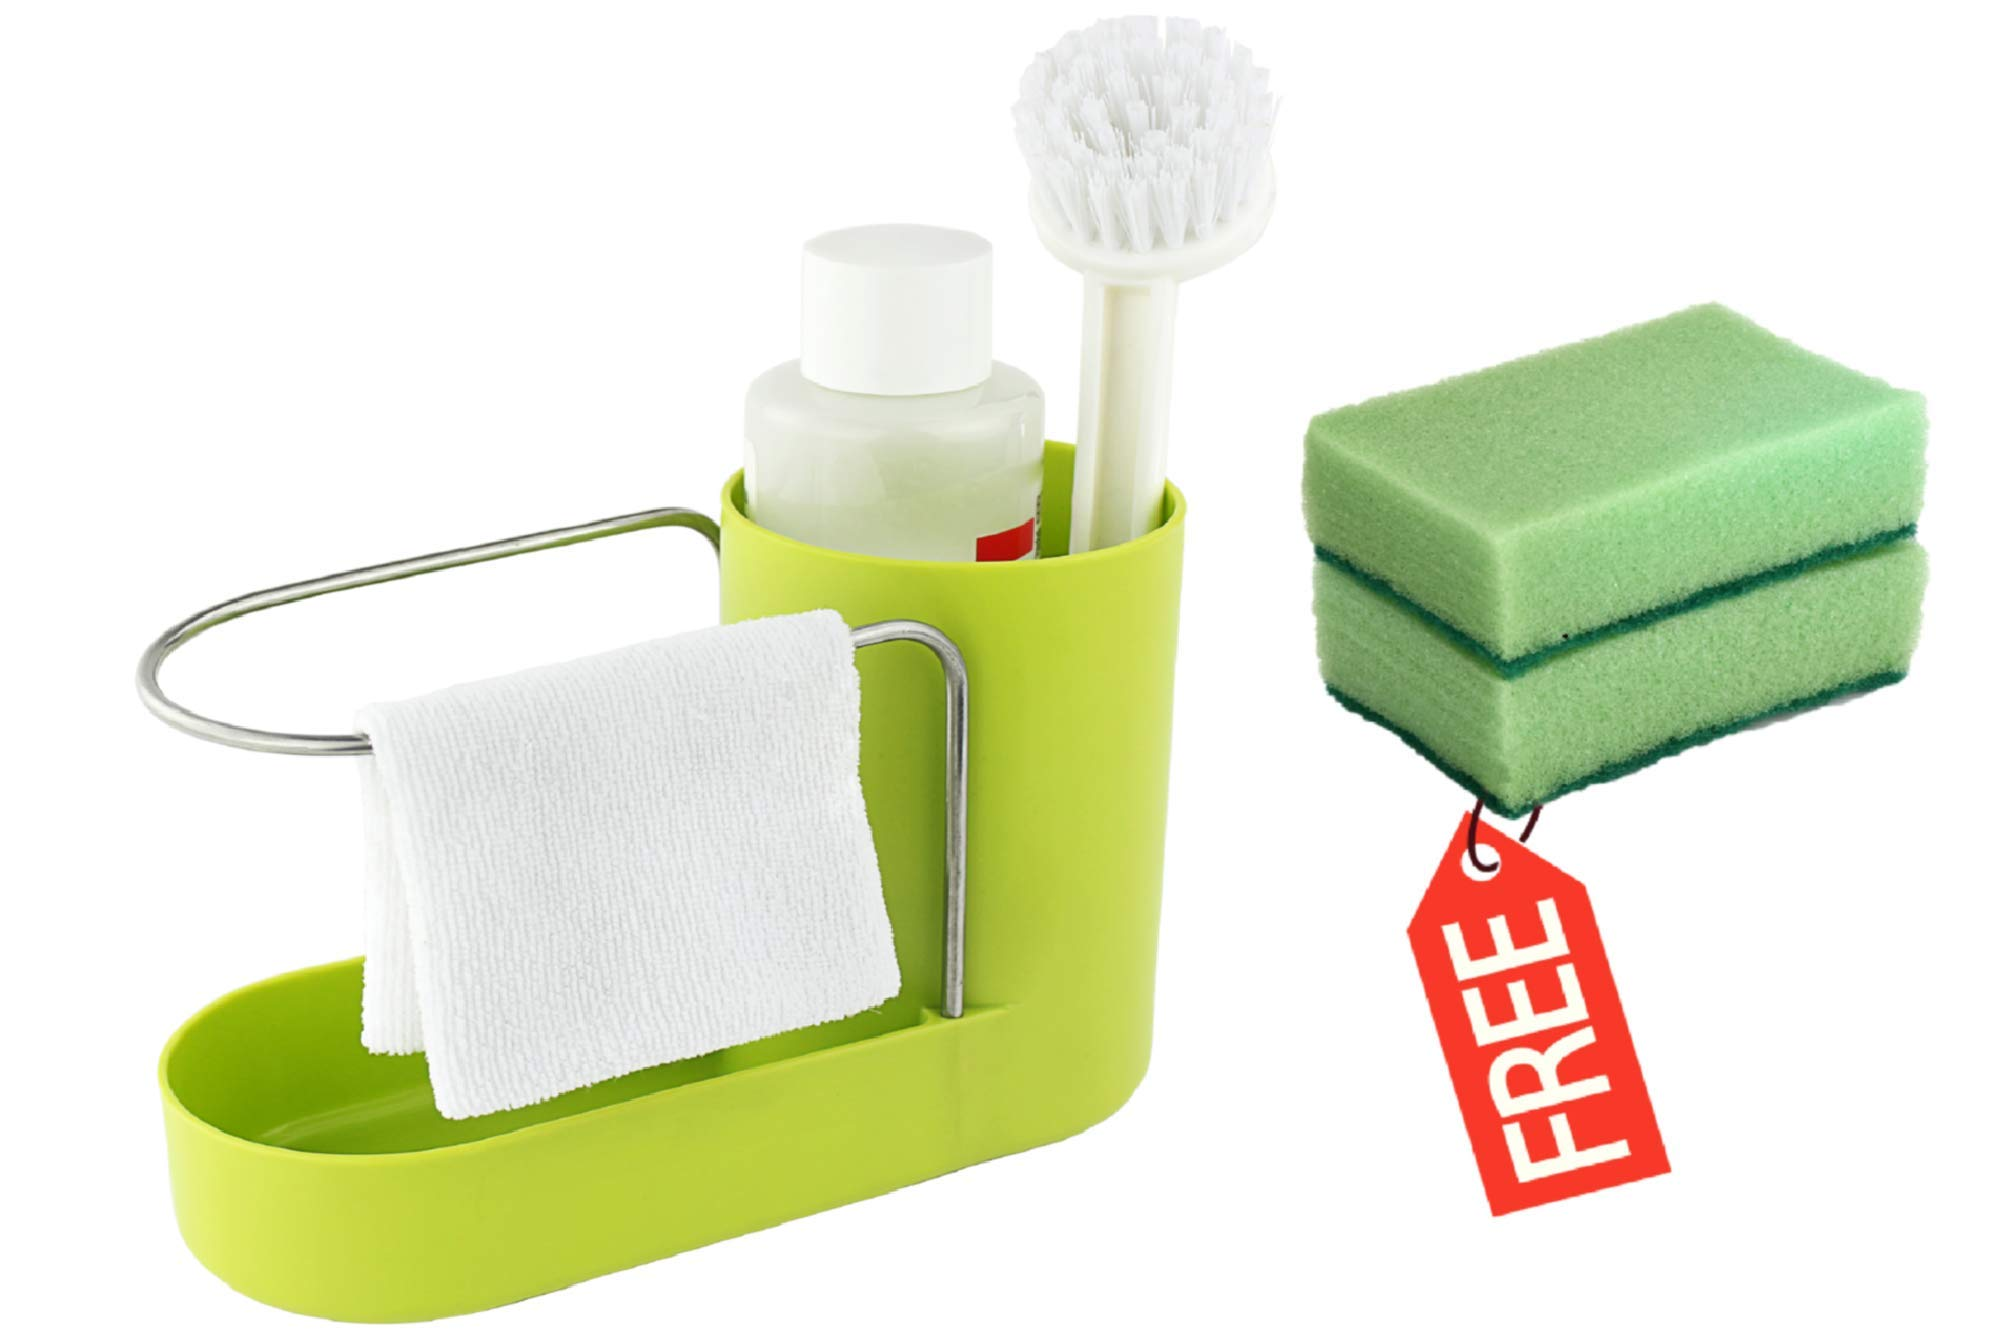 Convenient Kitchen Sink Organizer, Sink Caddy, Sinkware, Sponge Holder, Soap Dish, Brushes and Scrubbers Holder, Bathroom Caddy, Bathroom Organizer | 2 Top Quality Sponges FREE